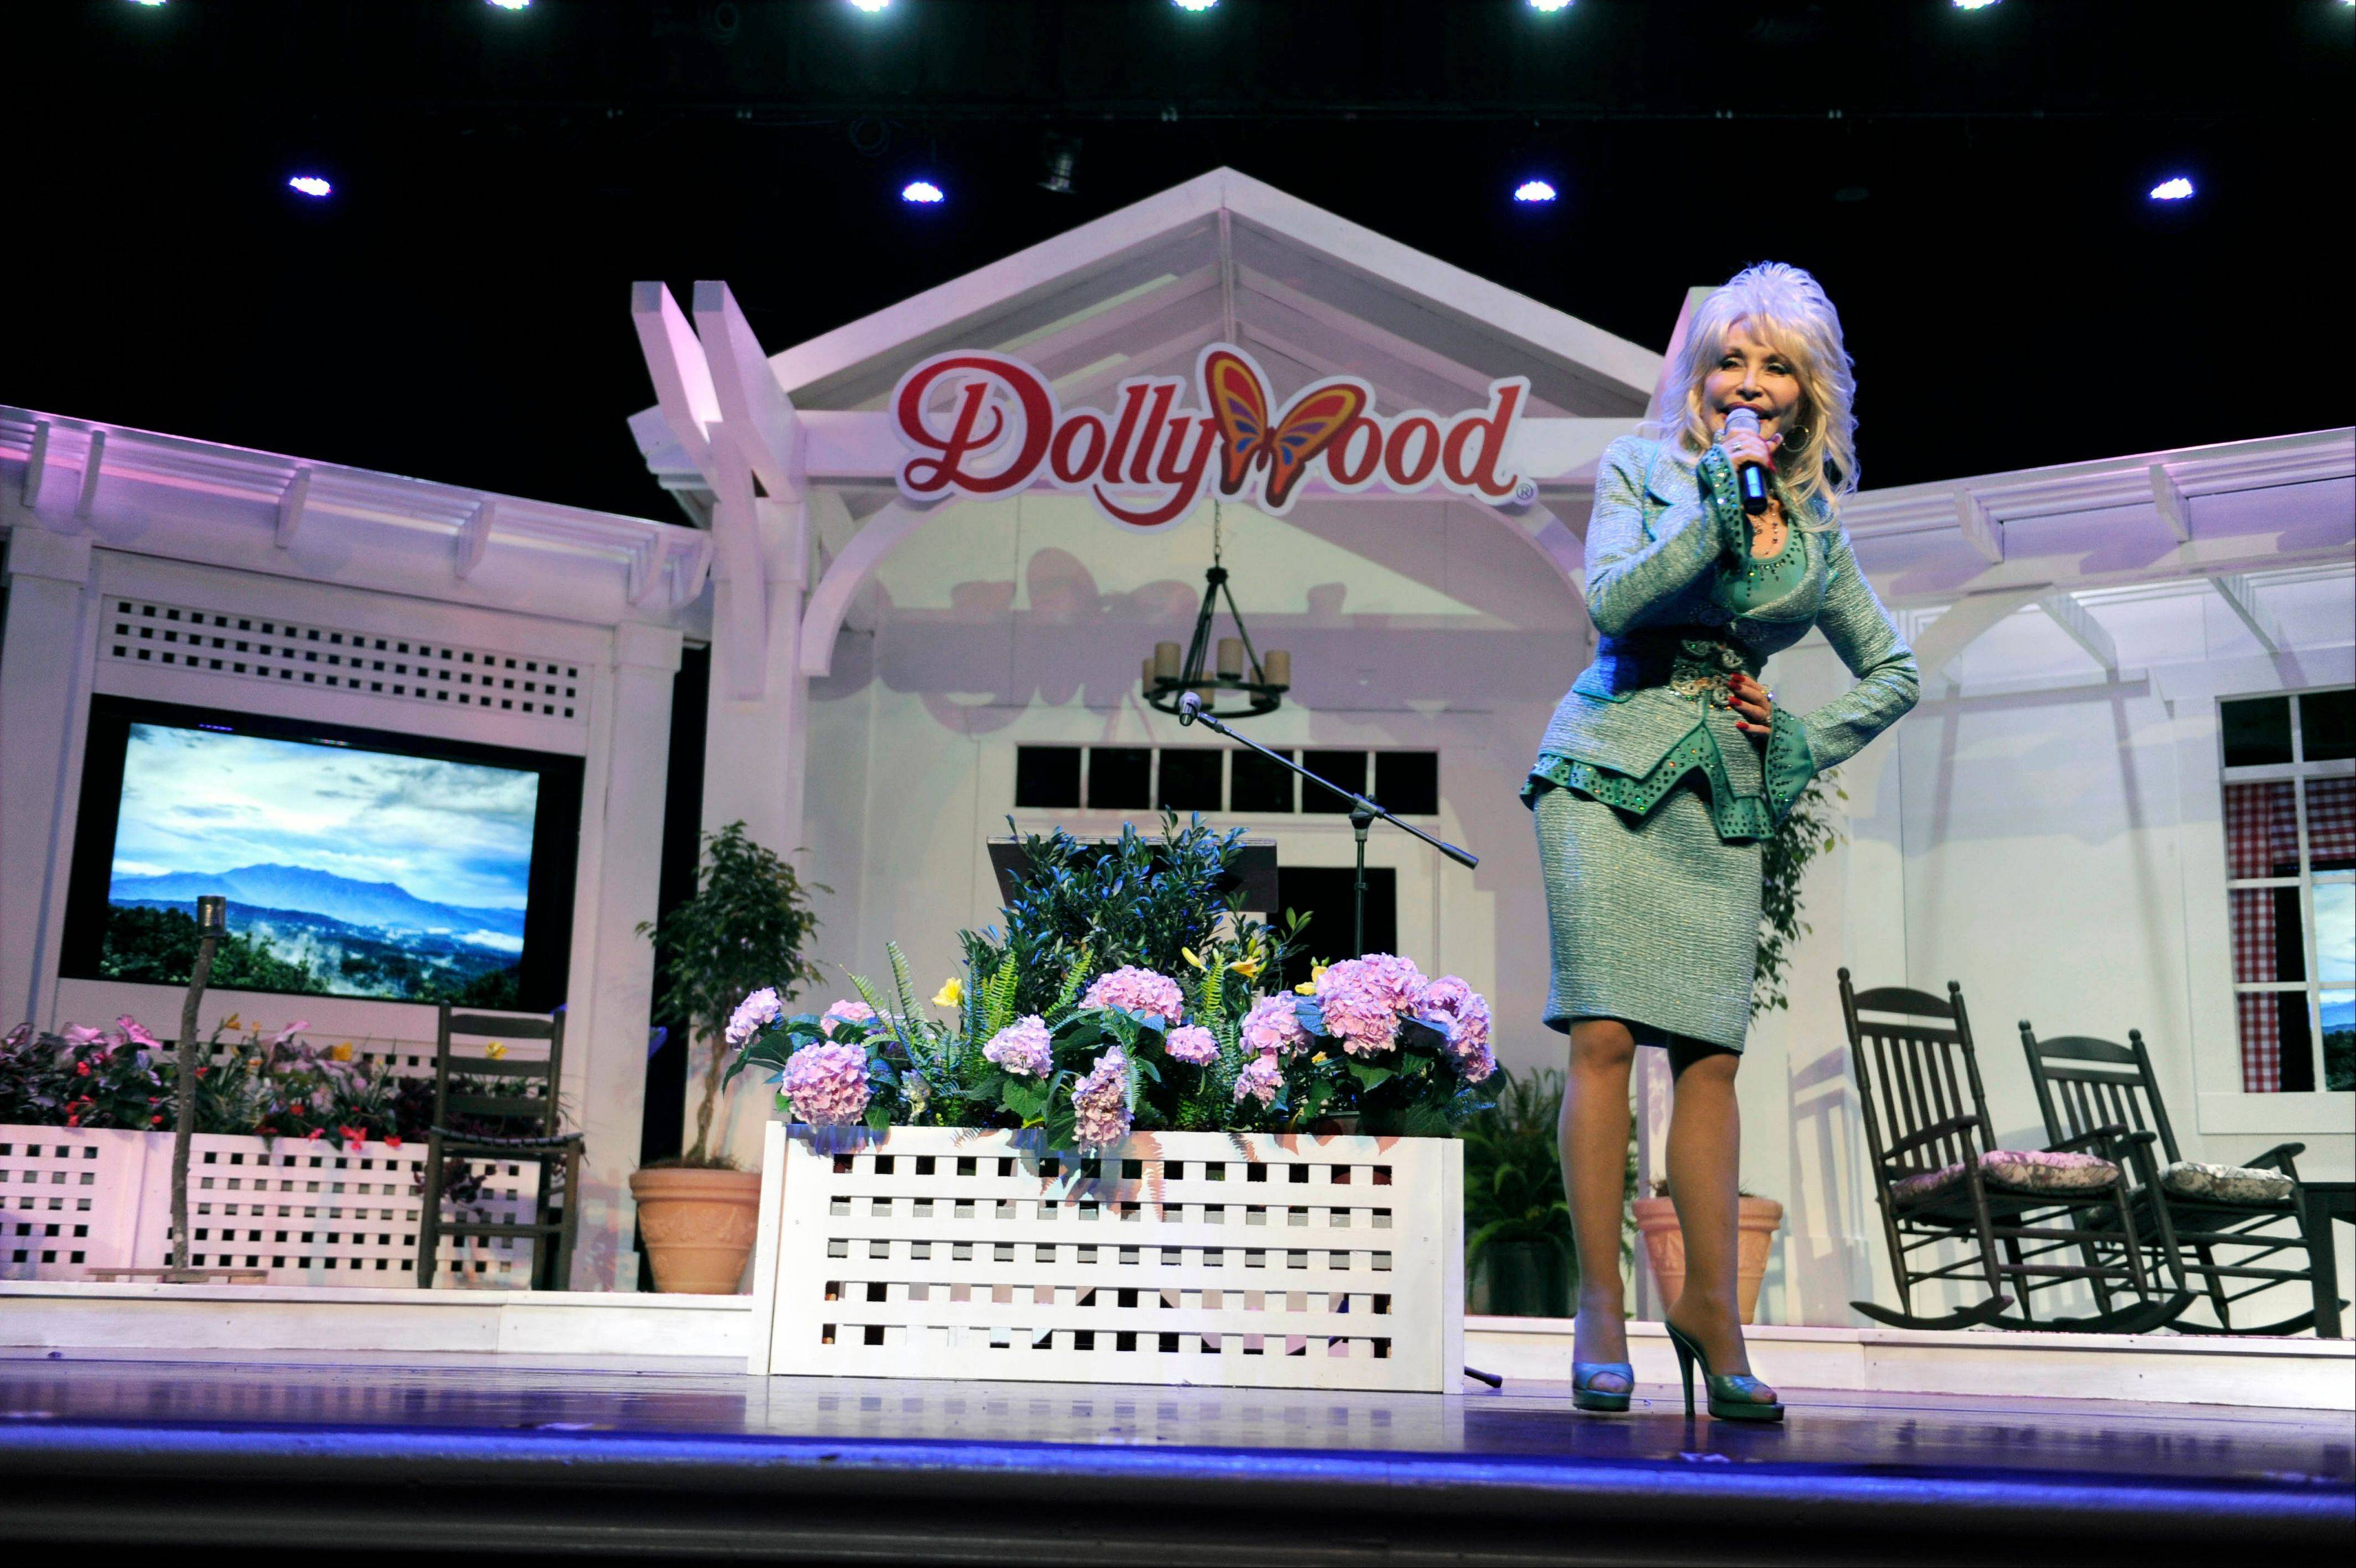 Dolly Parton speaks during a news conference to announce plans to expand her Dollywood properties in Pigeon Forge, Tenn. Parton said she is going invest $300 million over the next 10 years in a project that includes a 300-room resort.